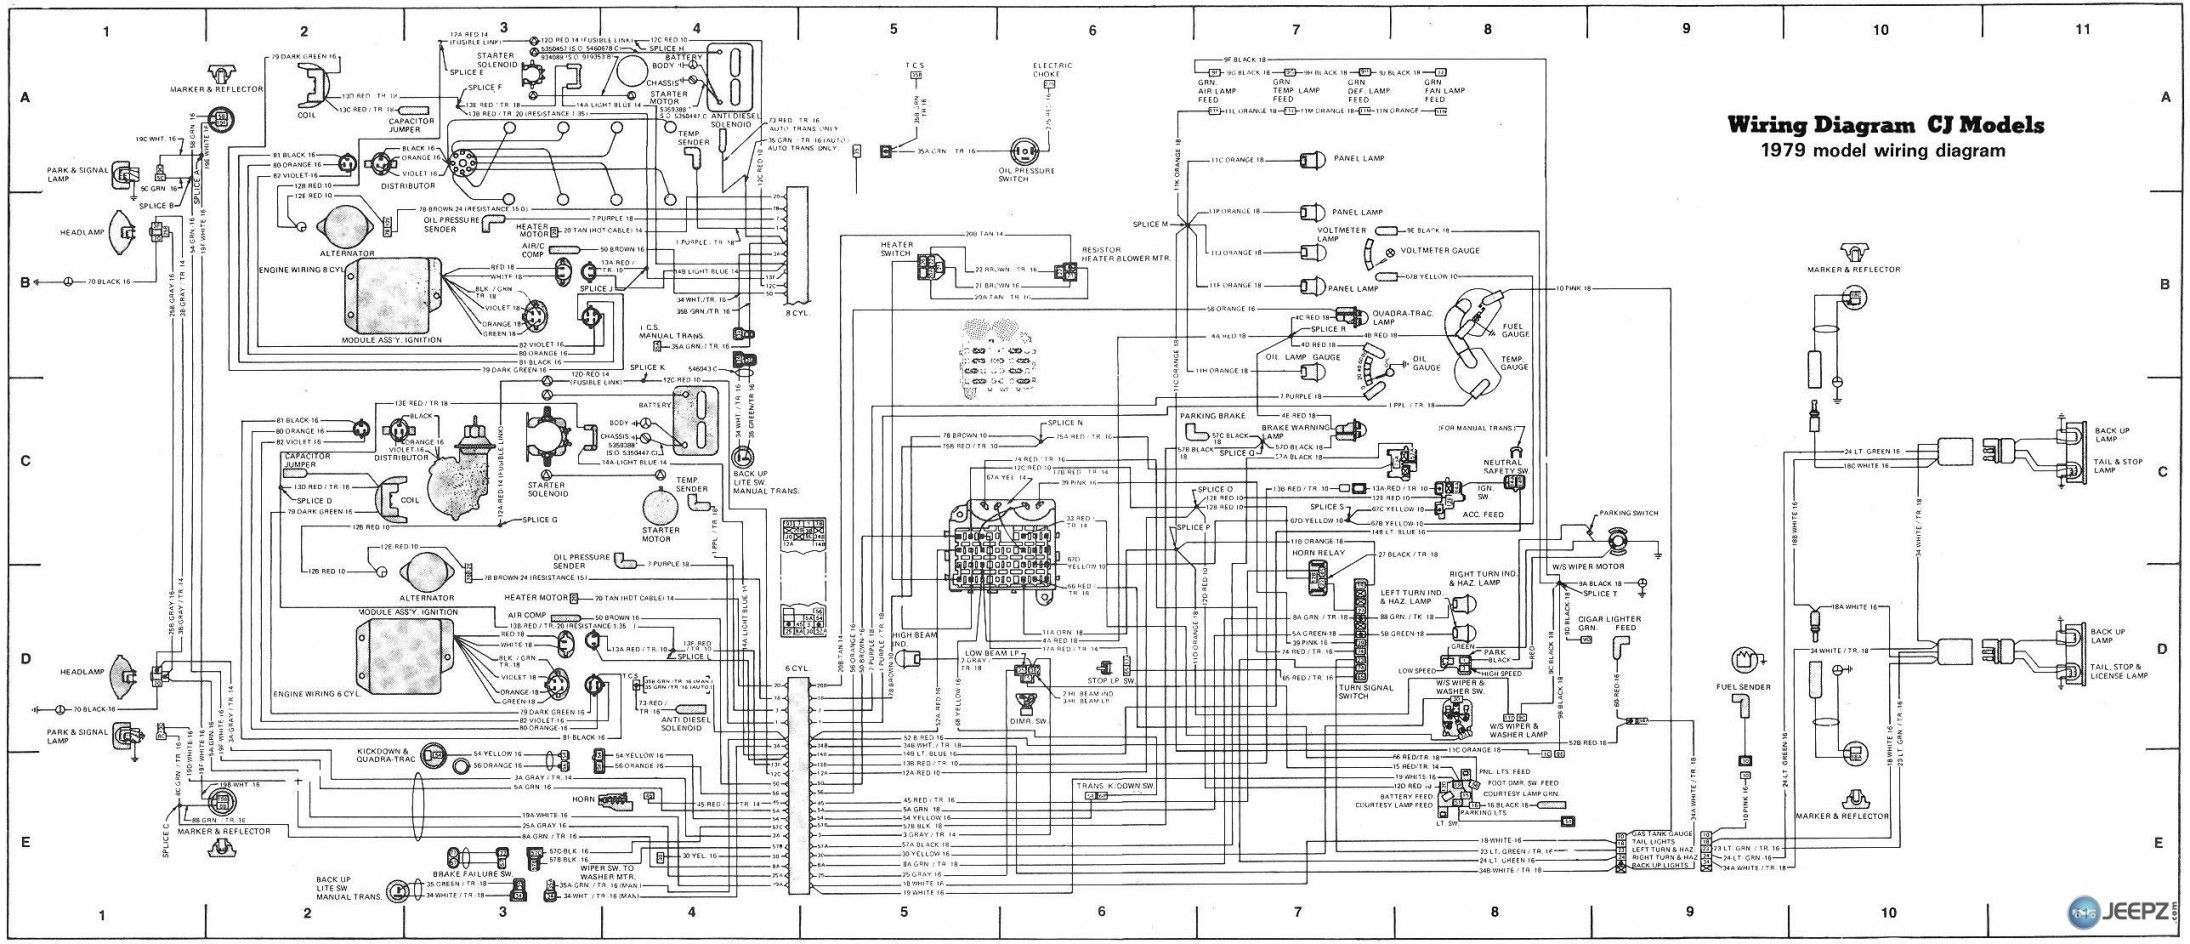 wiring diagram for jeep cj7 auto diagram database 1983 jeep cj7 gauge cluster wiring diagram [ 2190 x 944 Pixel ]